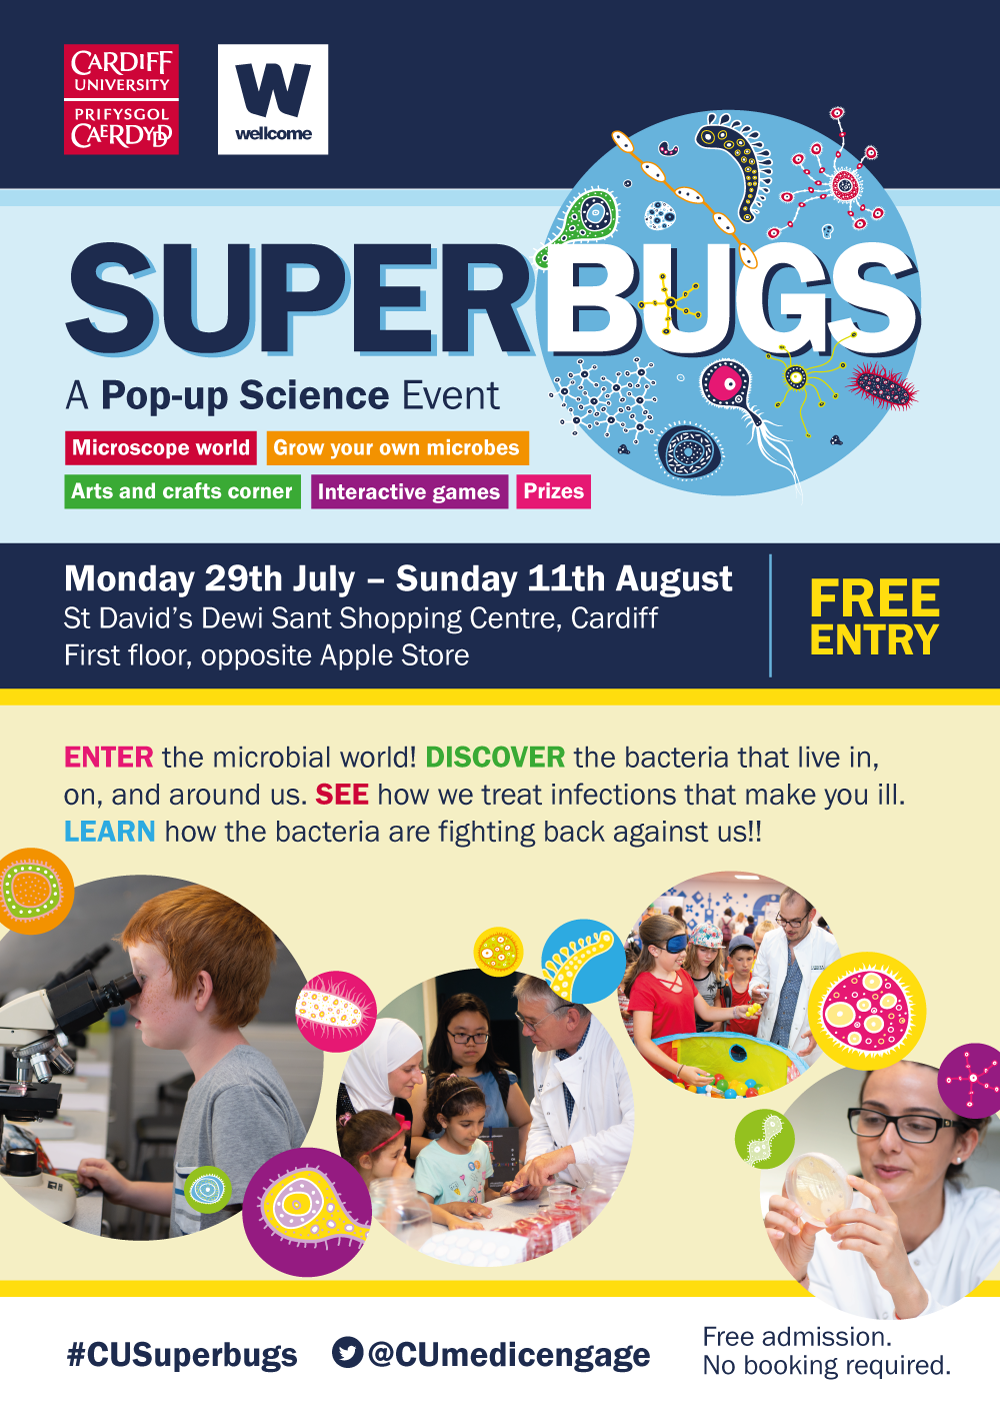 Superbugs -  A Pop-Up Science Event